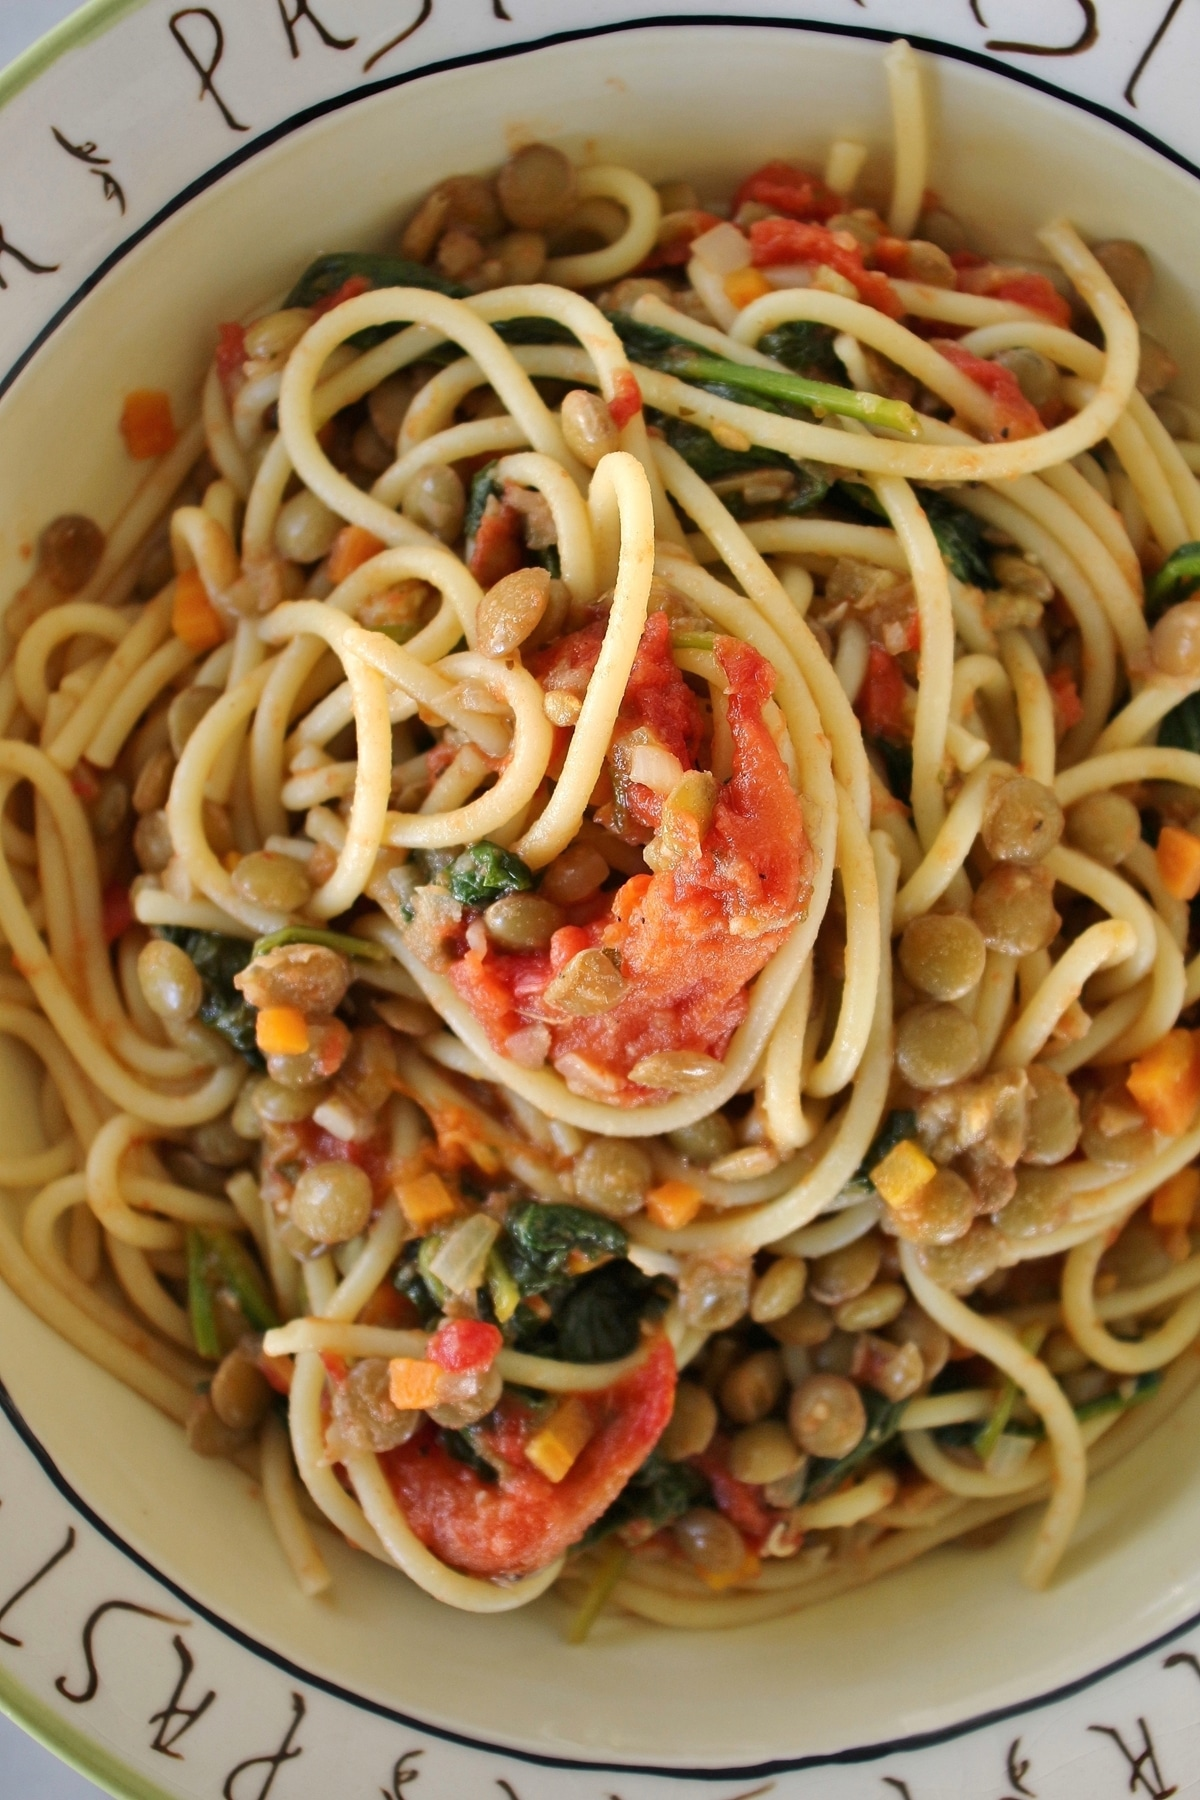 A bowl of spaghetti with lentils, roasted tomatoes, and spinach